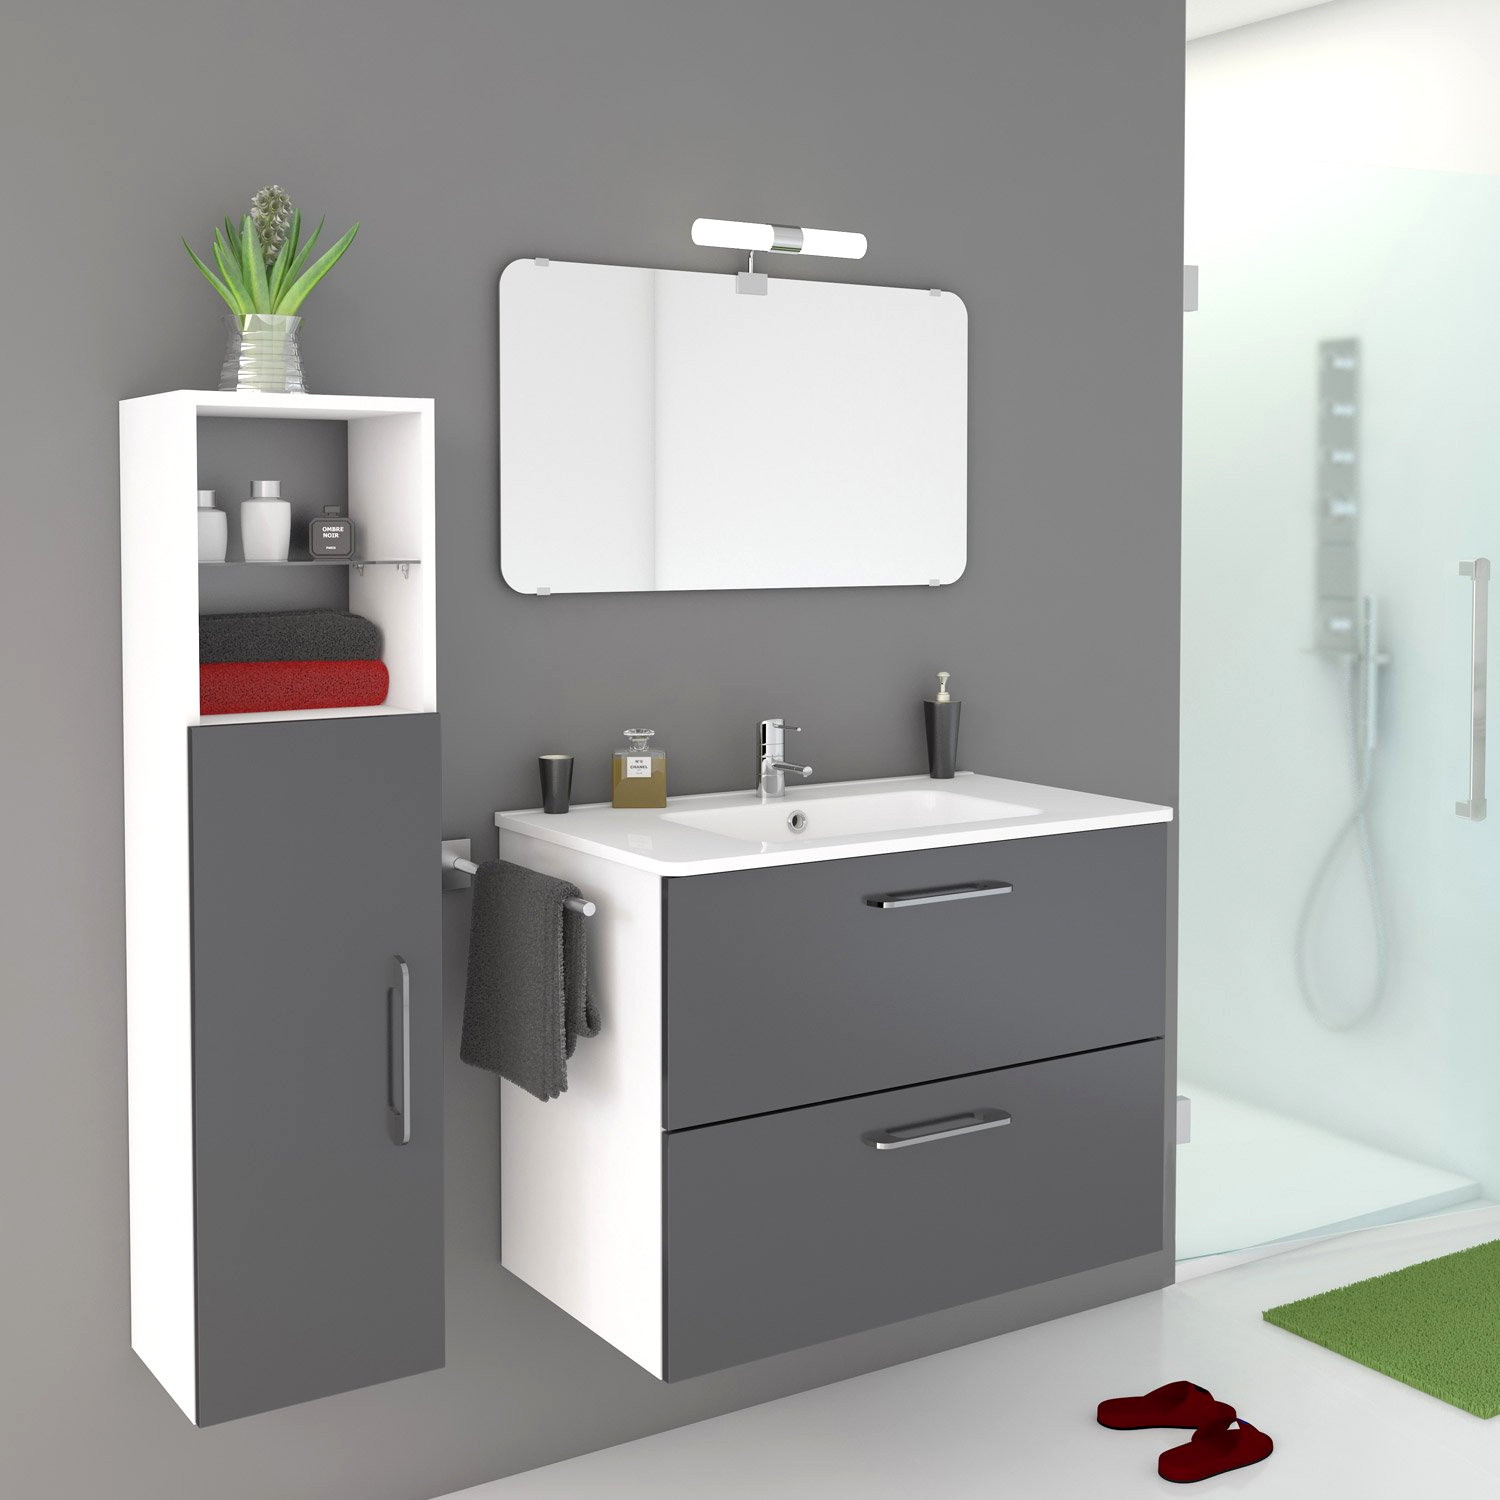 Meuble Double Vasque Brico Depot Meilleur De Image Search Results Meuble De Wc Brico Depot